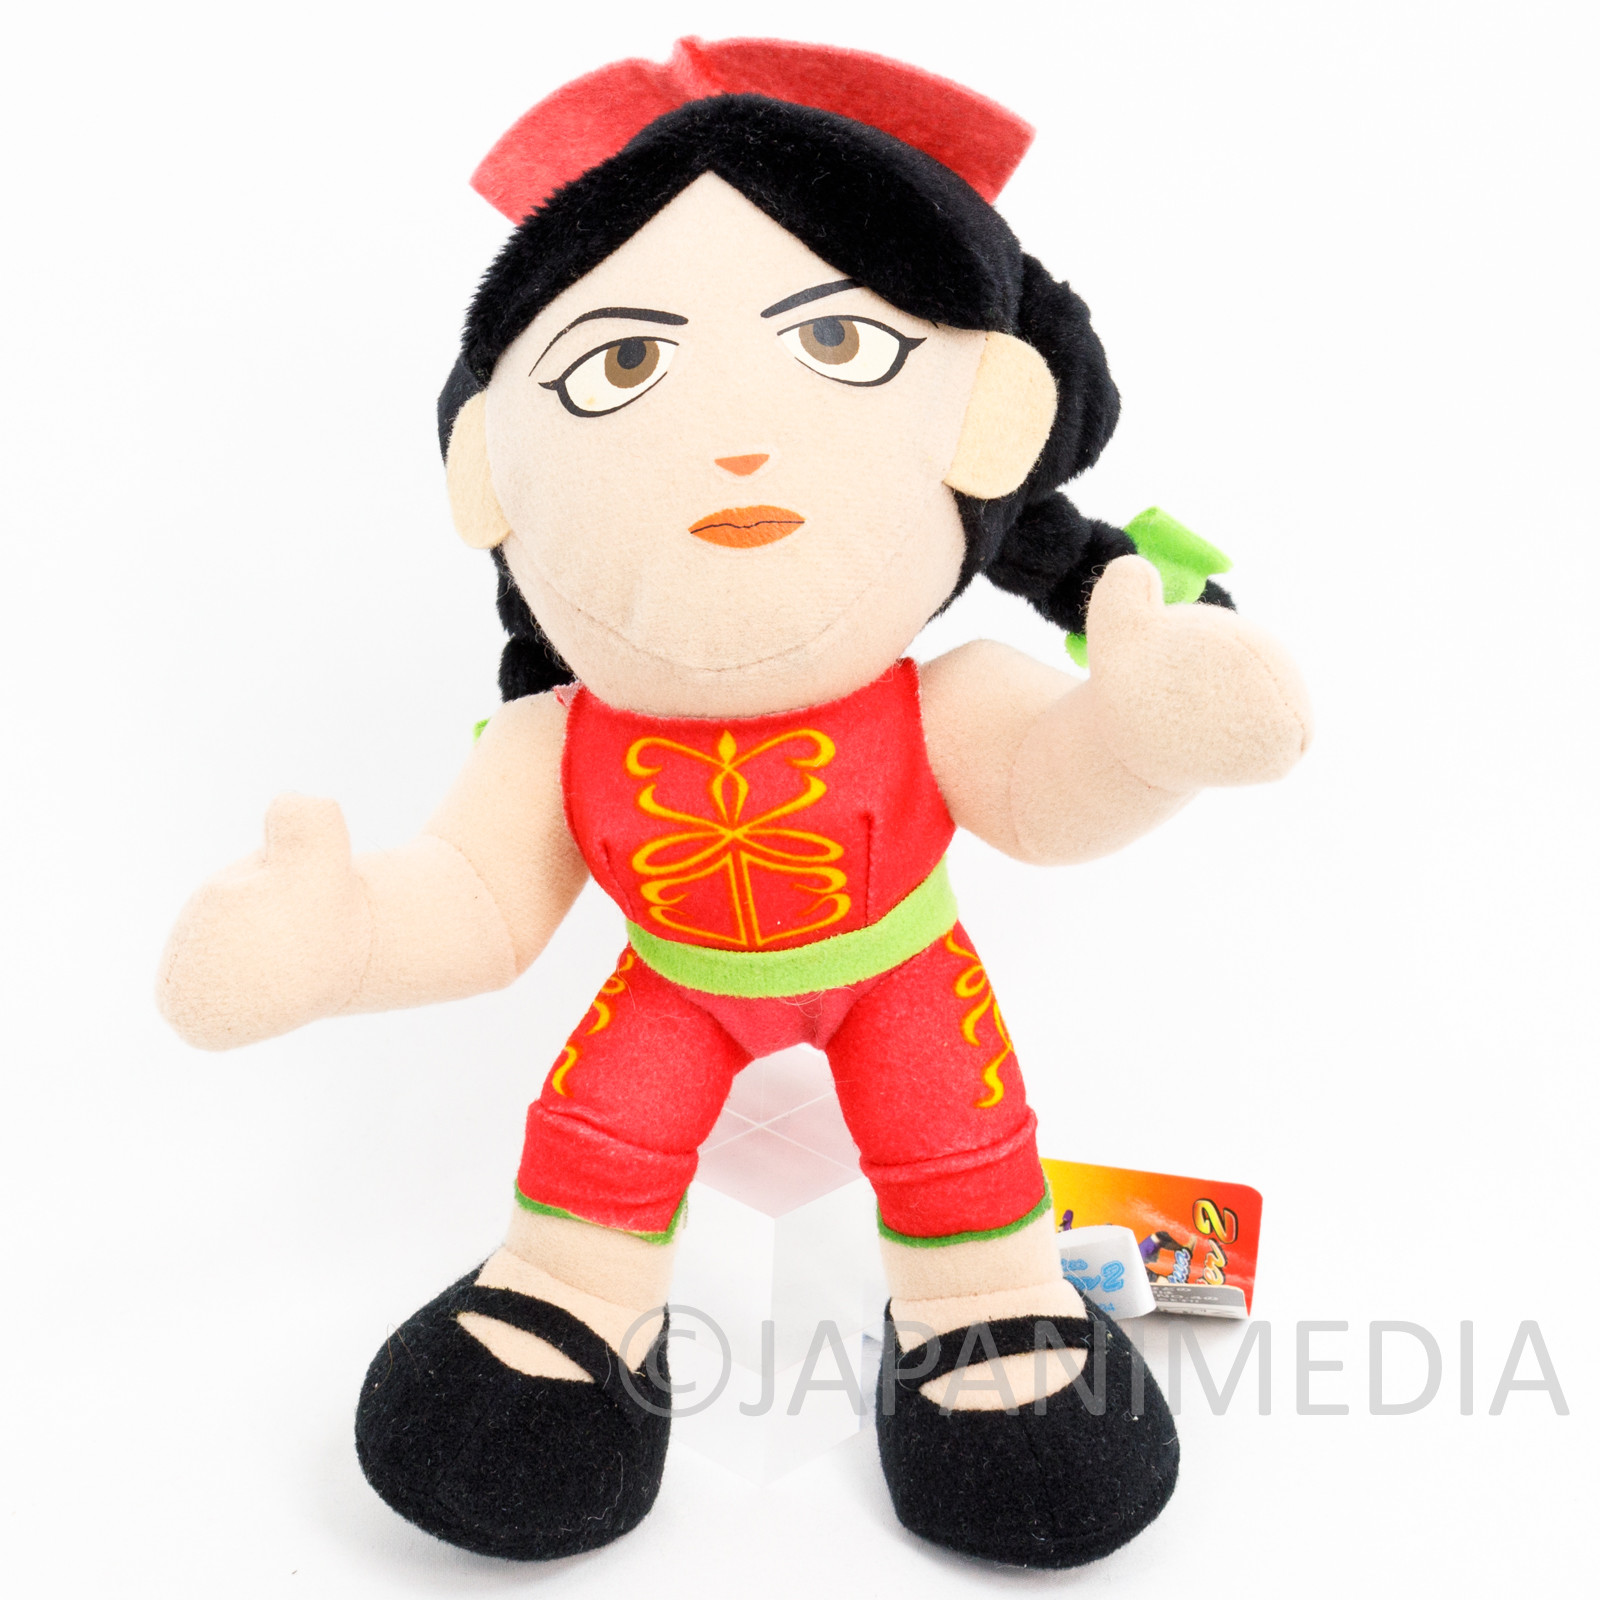 "Virtua Fighter Pai Chan Plush Doll 9"" SEGA 1994 JAPAN"